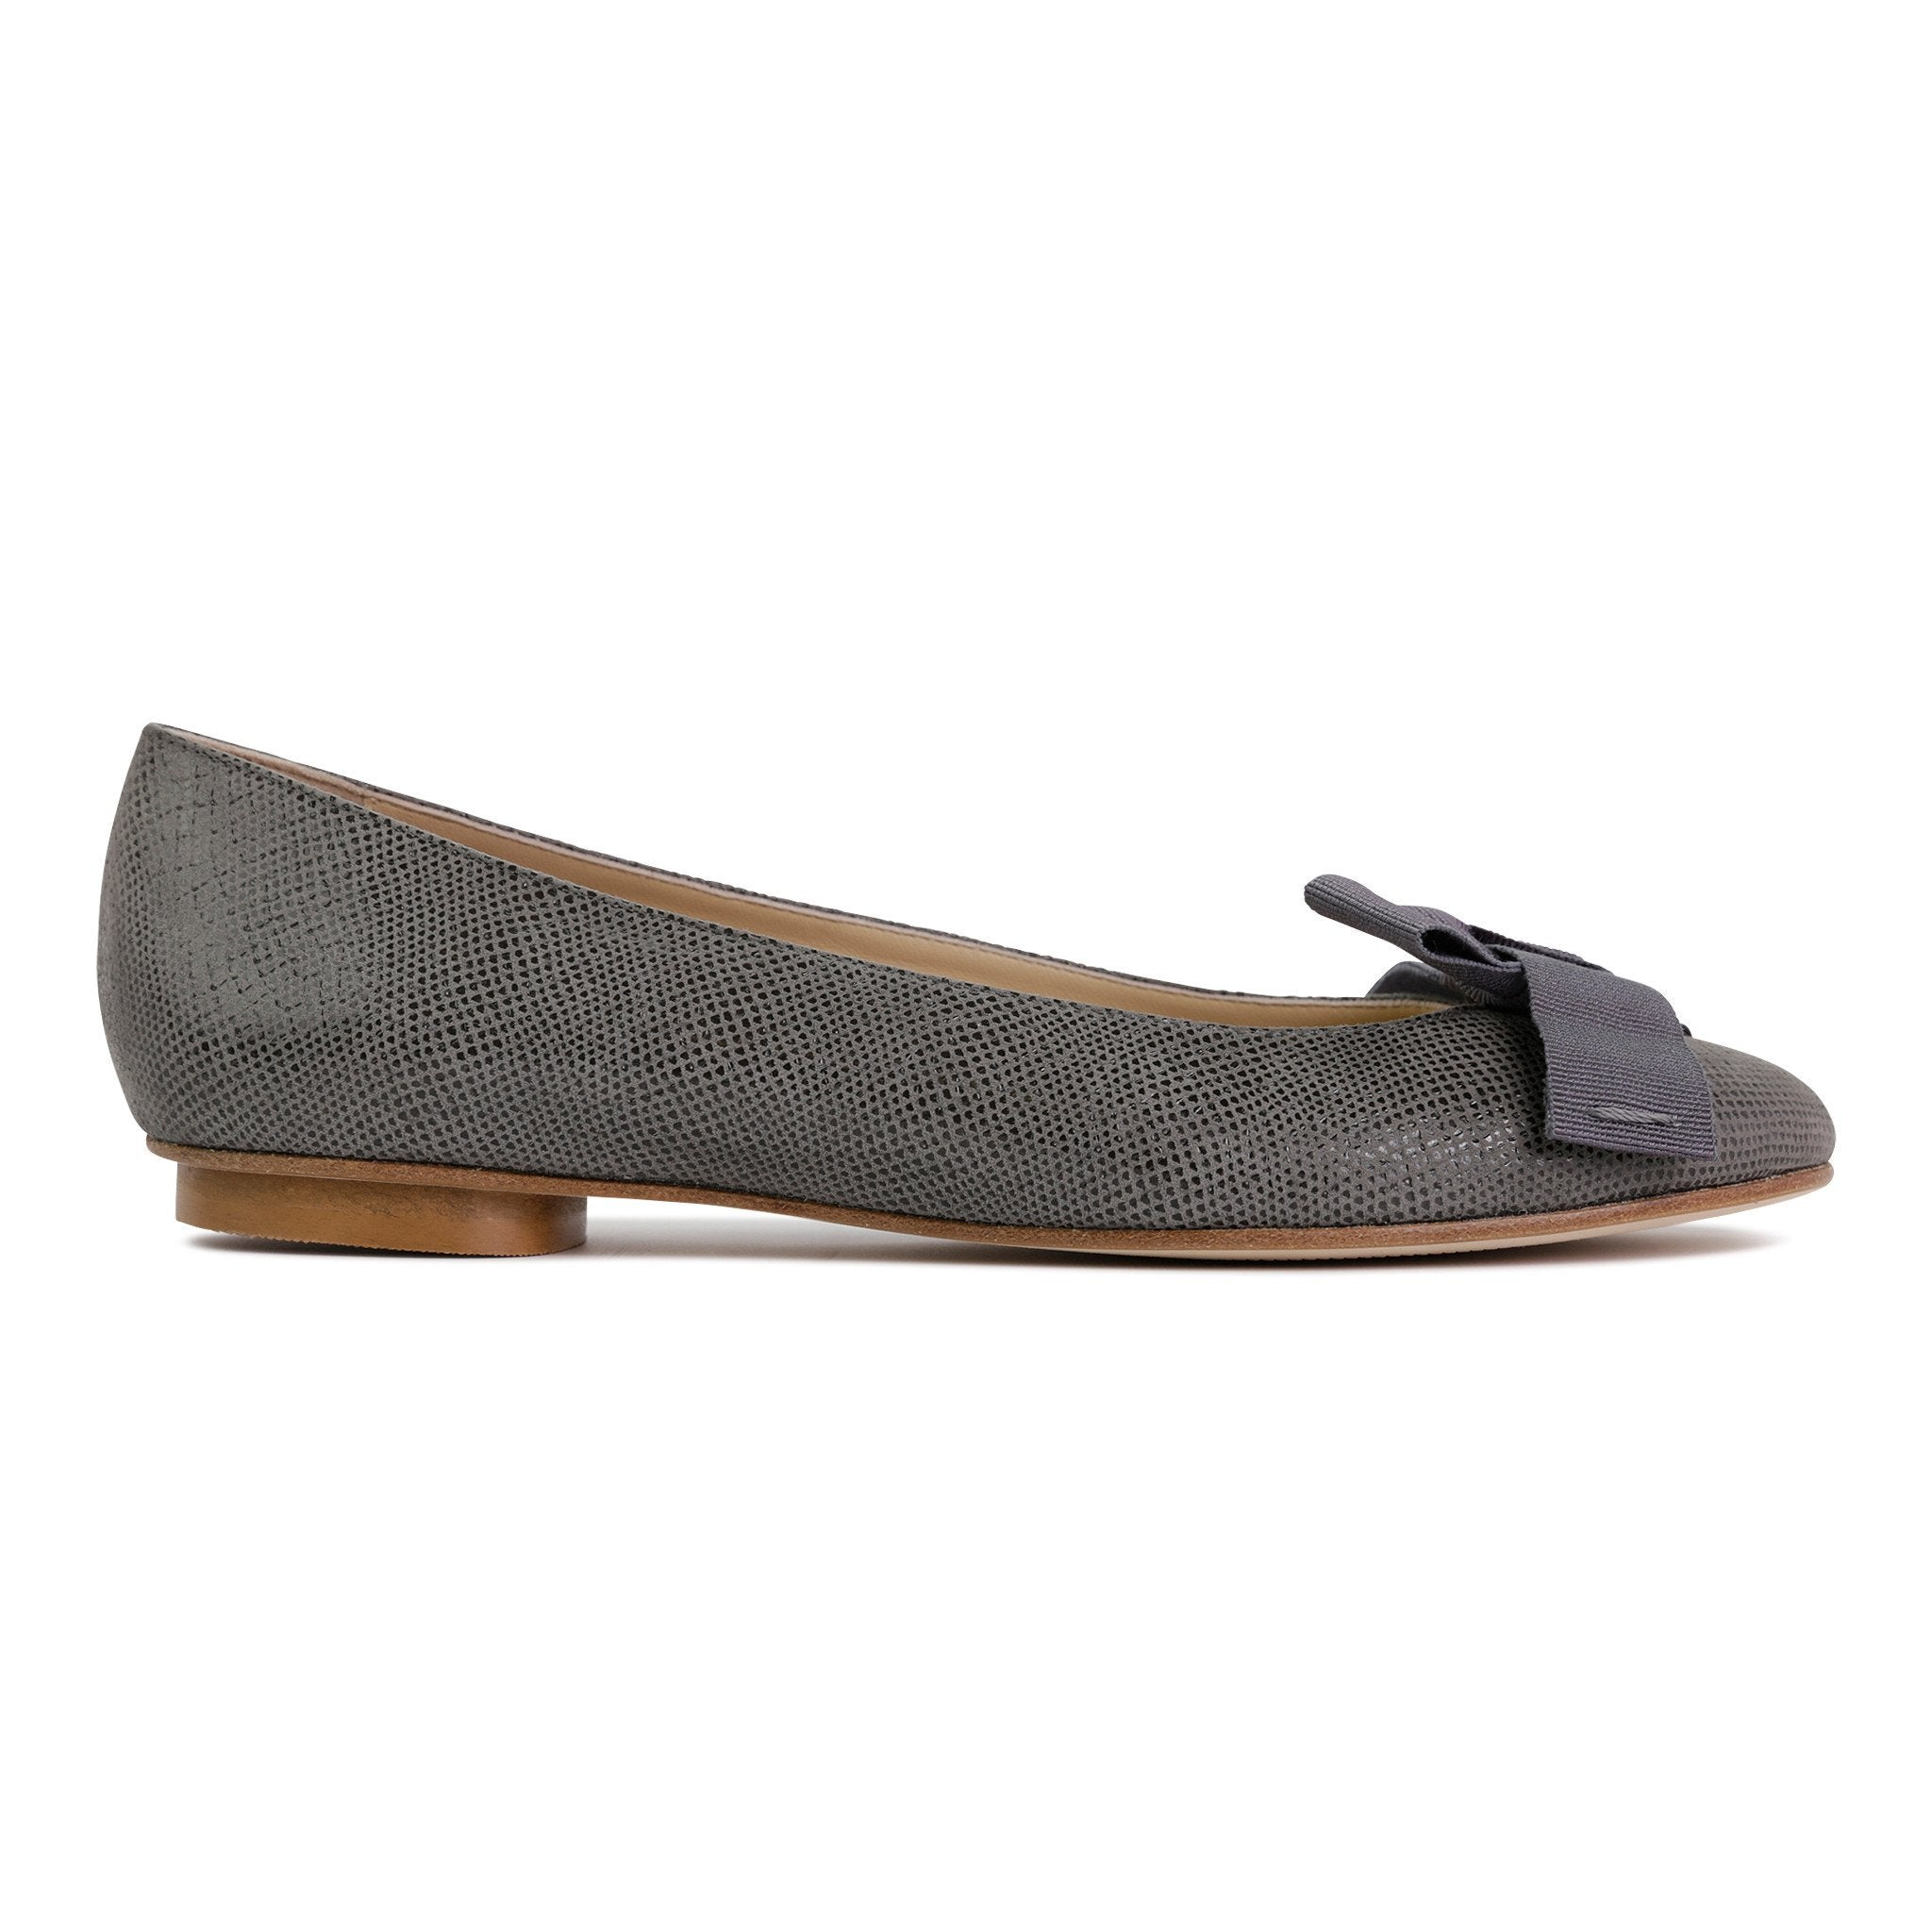 ROMA - Karung Anthracite + Grosgrain Bow, VIAJIYU - Women's Hand Made Sustainable Luxury Shoes. Made in Italy. Made to Order.